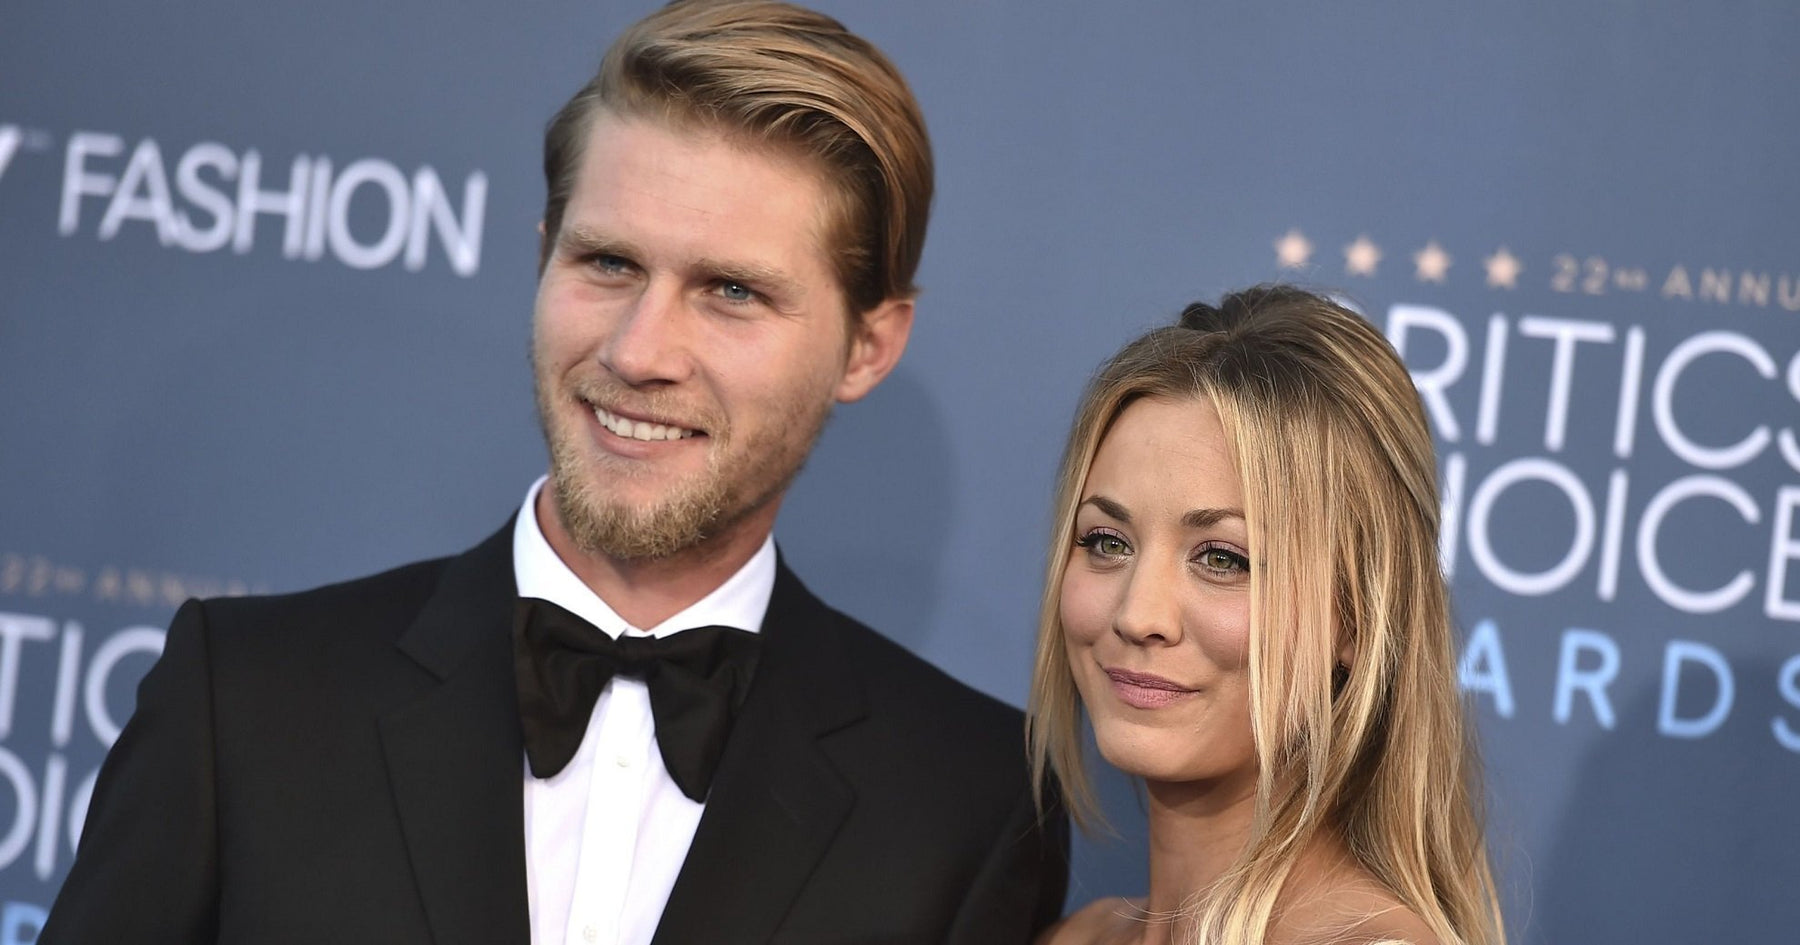 Kaley Cuoco's New Husband Brings Laughter to Their Wedding With Hilarious Vows